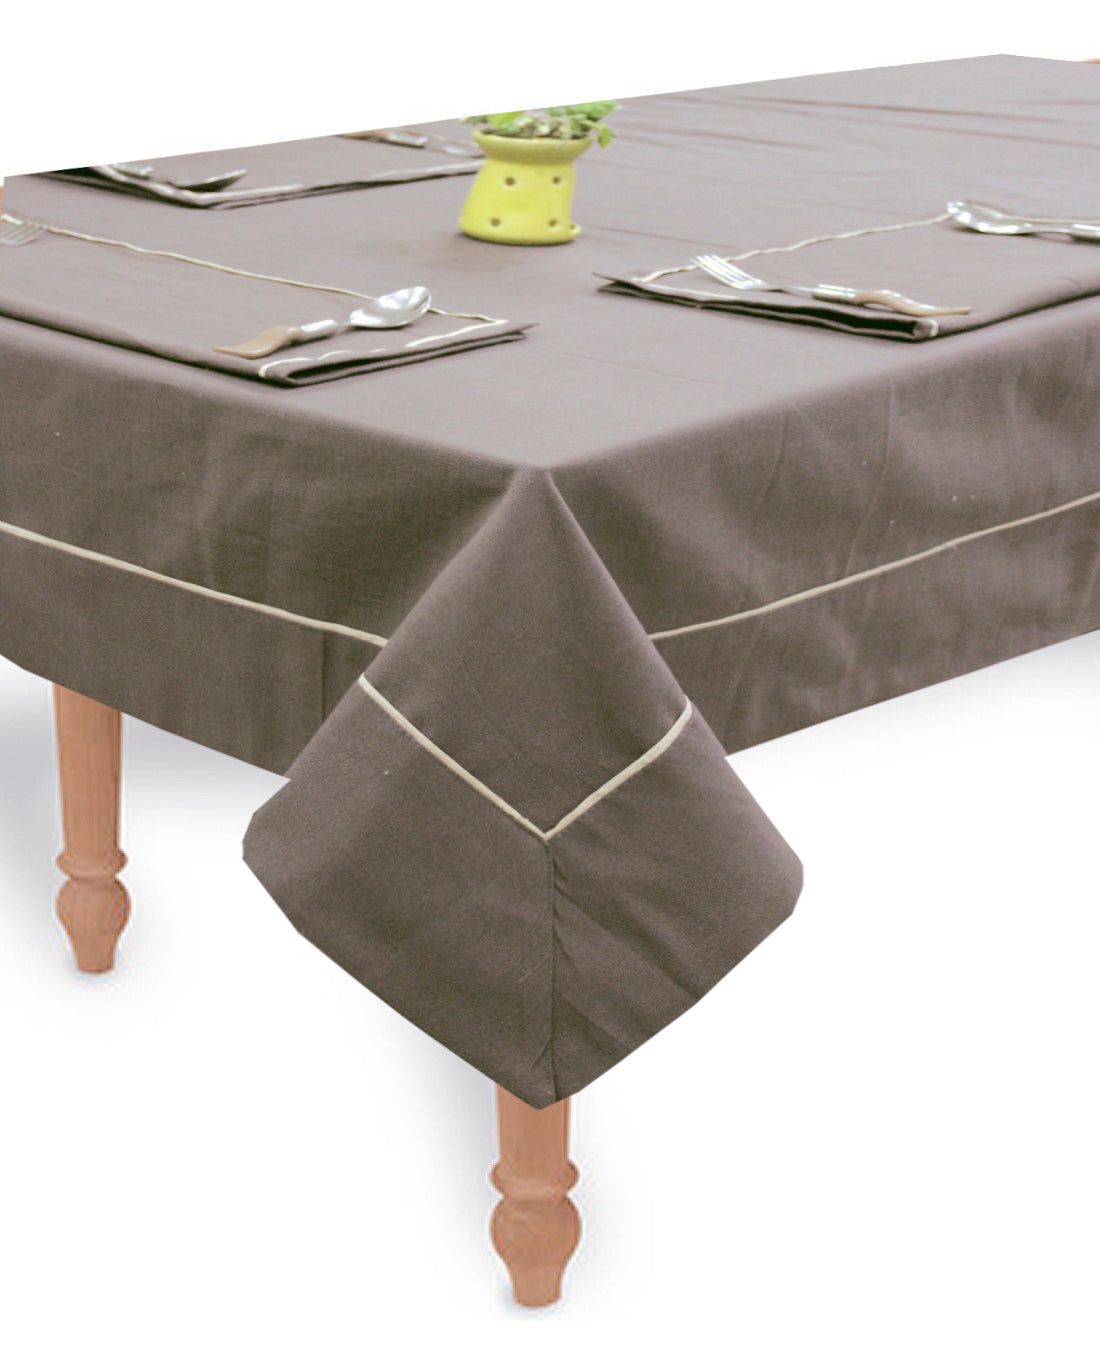 "AURAVE Woven Cotton 200 TC 60""x90"" Plain Table Cover (Coffee)"